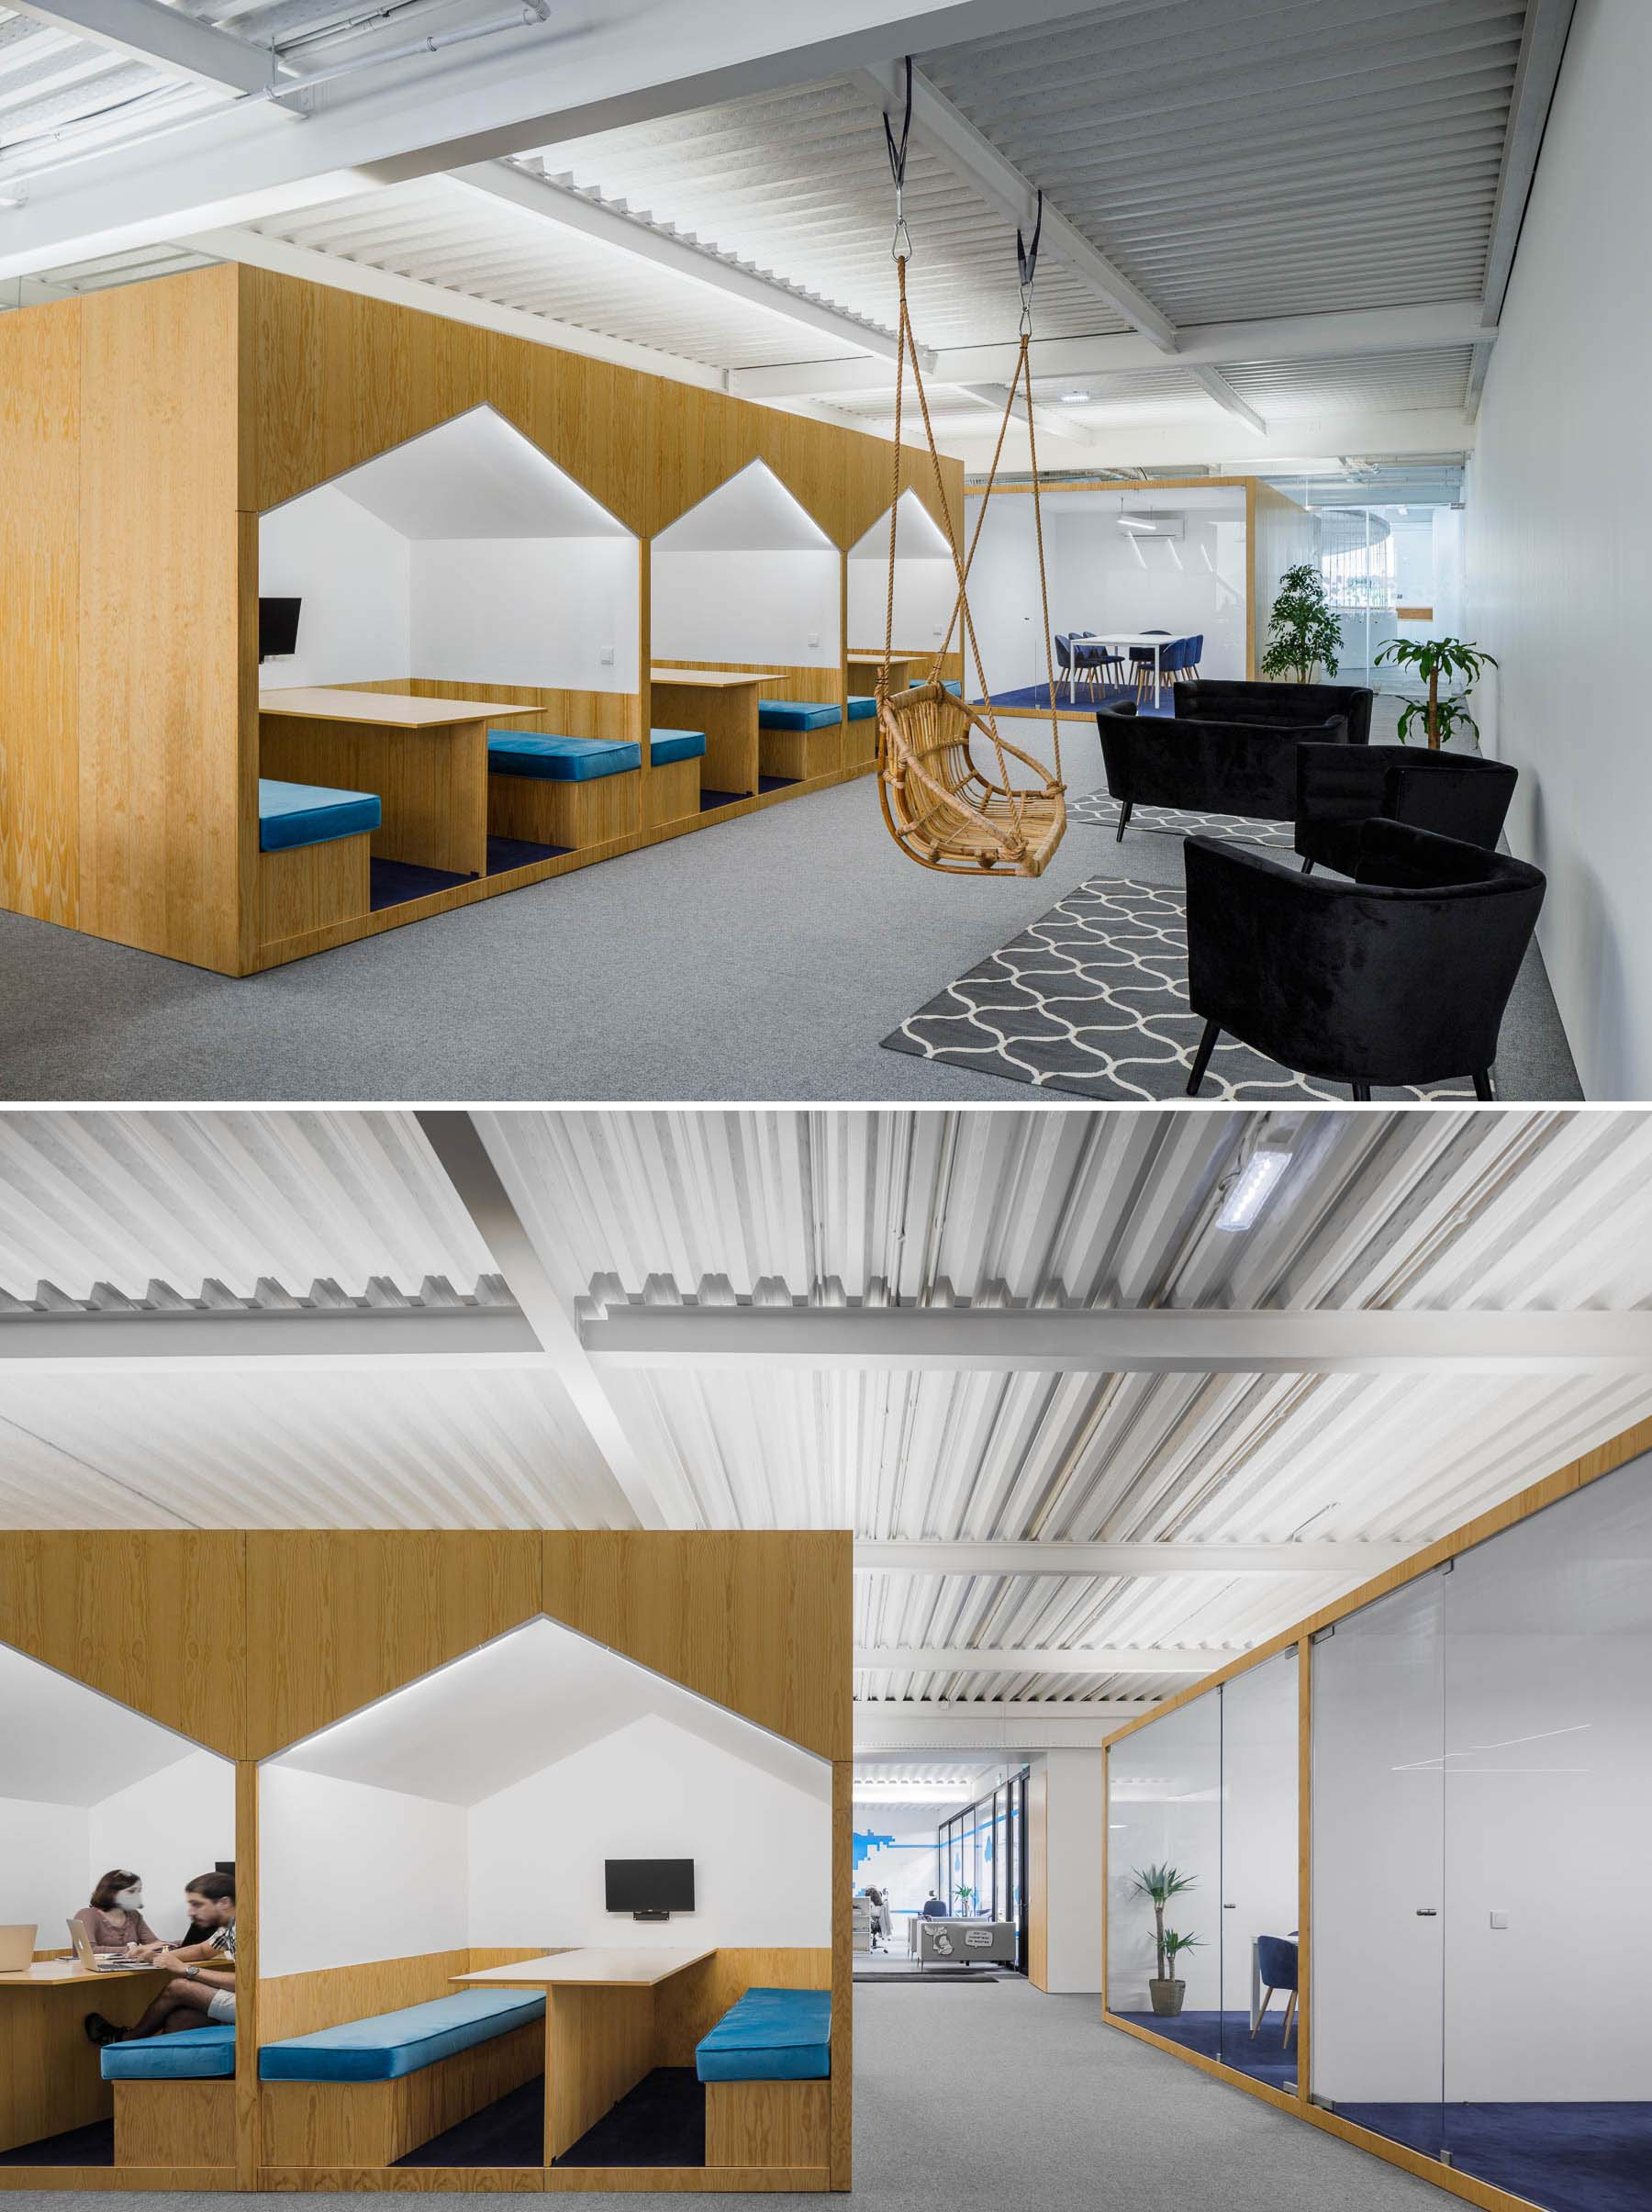 There's a variety of different seating areas in this modern office interior, including spaces for casual meetings in house-shaped alcoves.